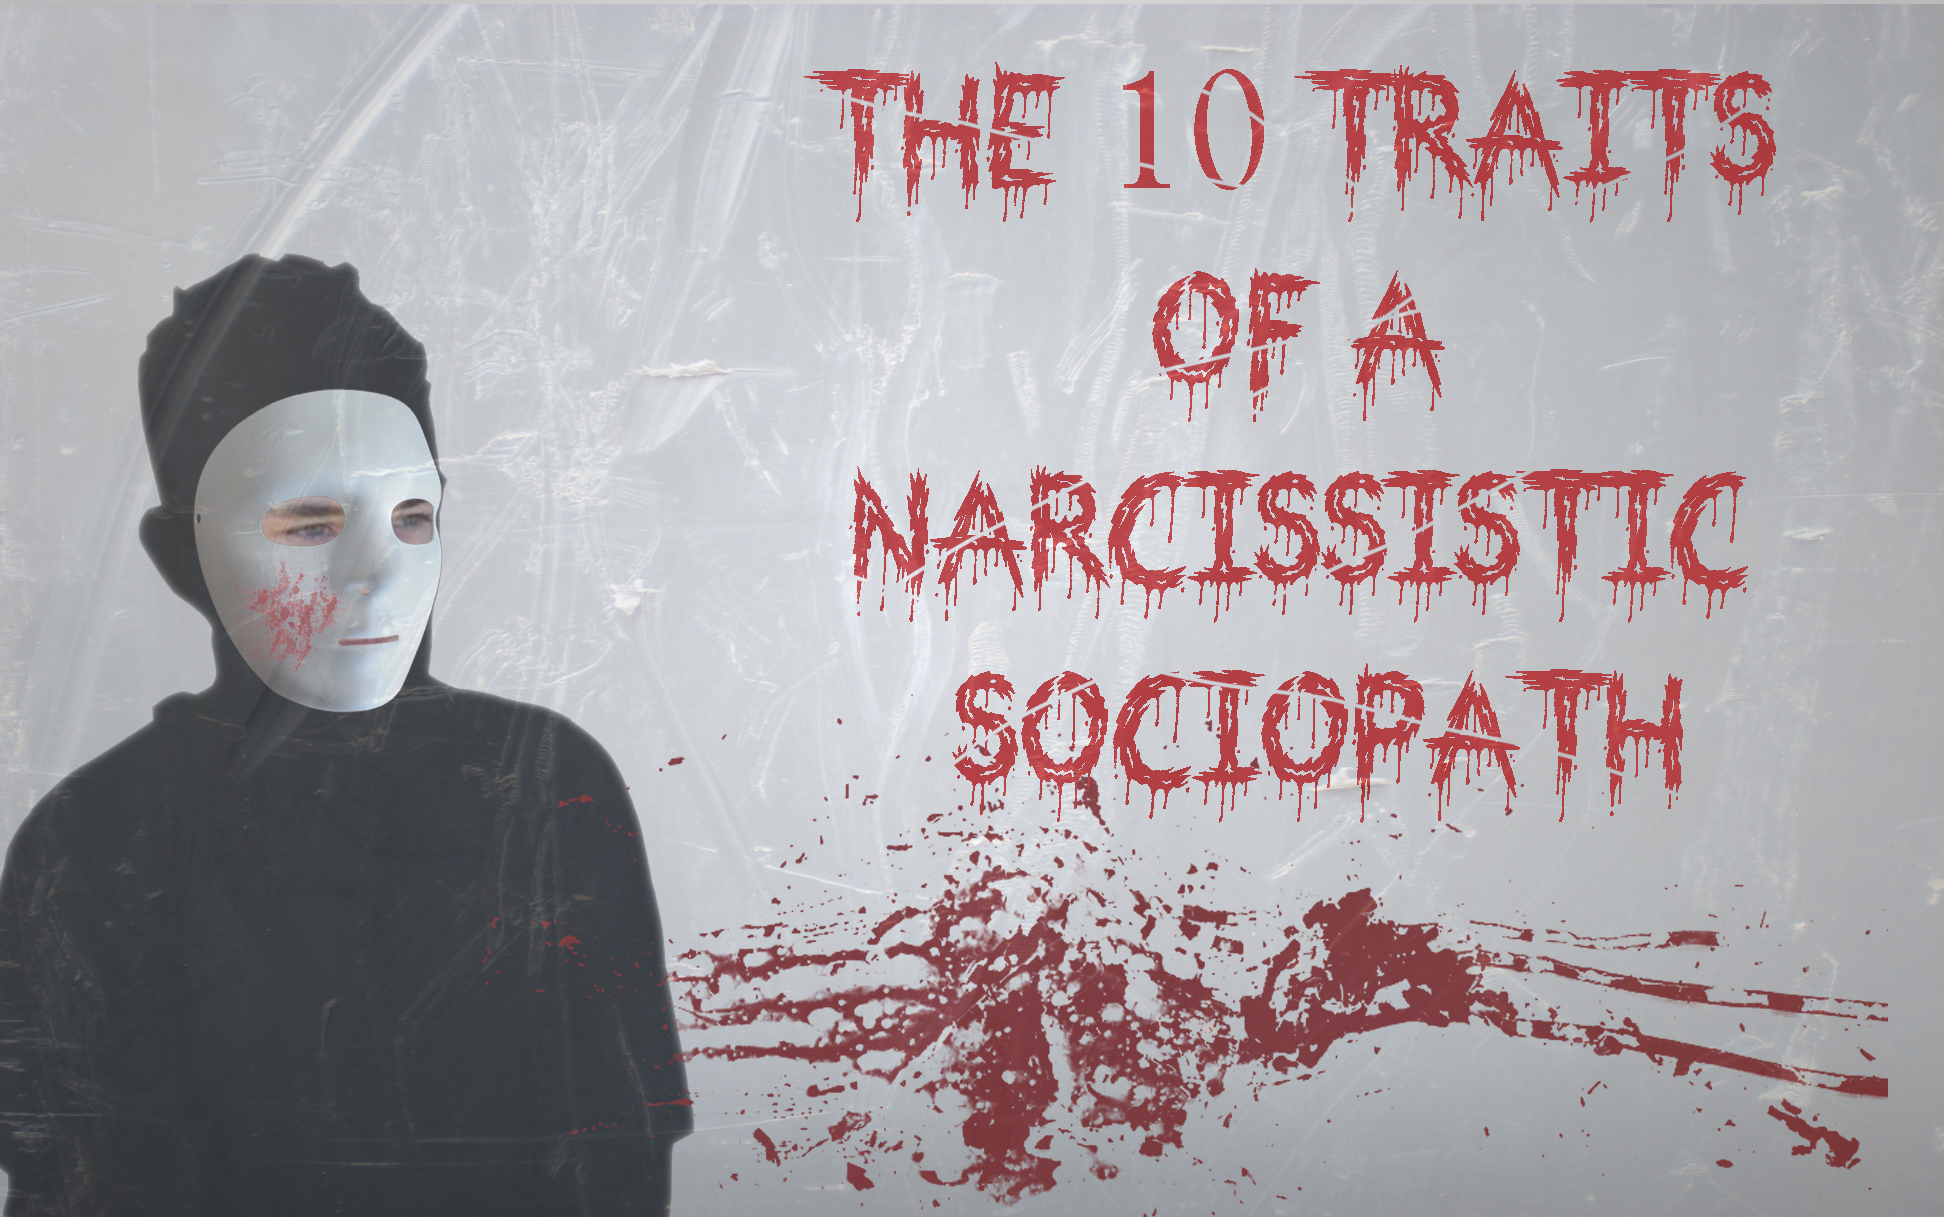 sociopathic personality Find out what antisocial personality disorder is, what the signs are, and how it's diagnosed and treated.